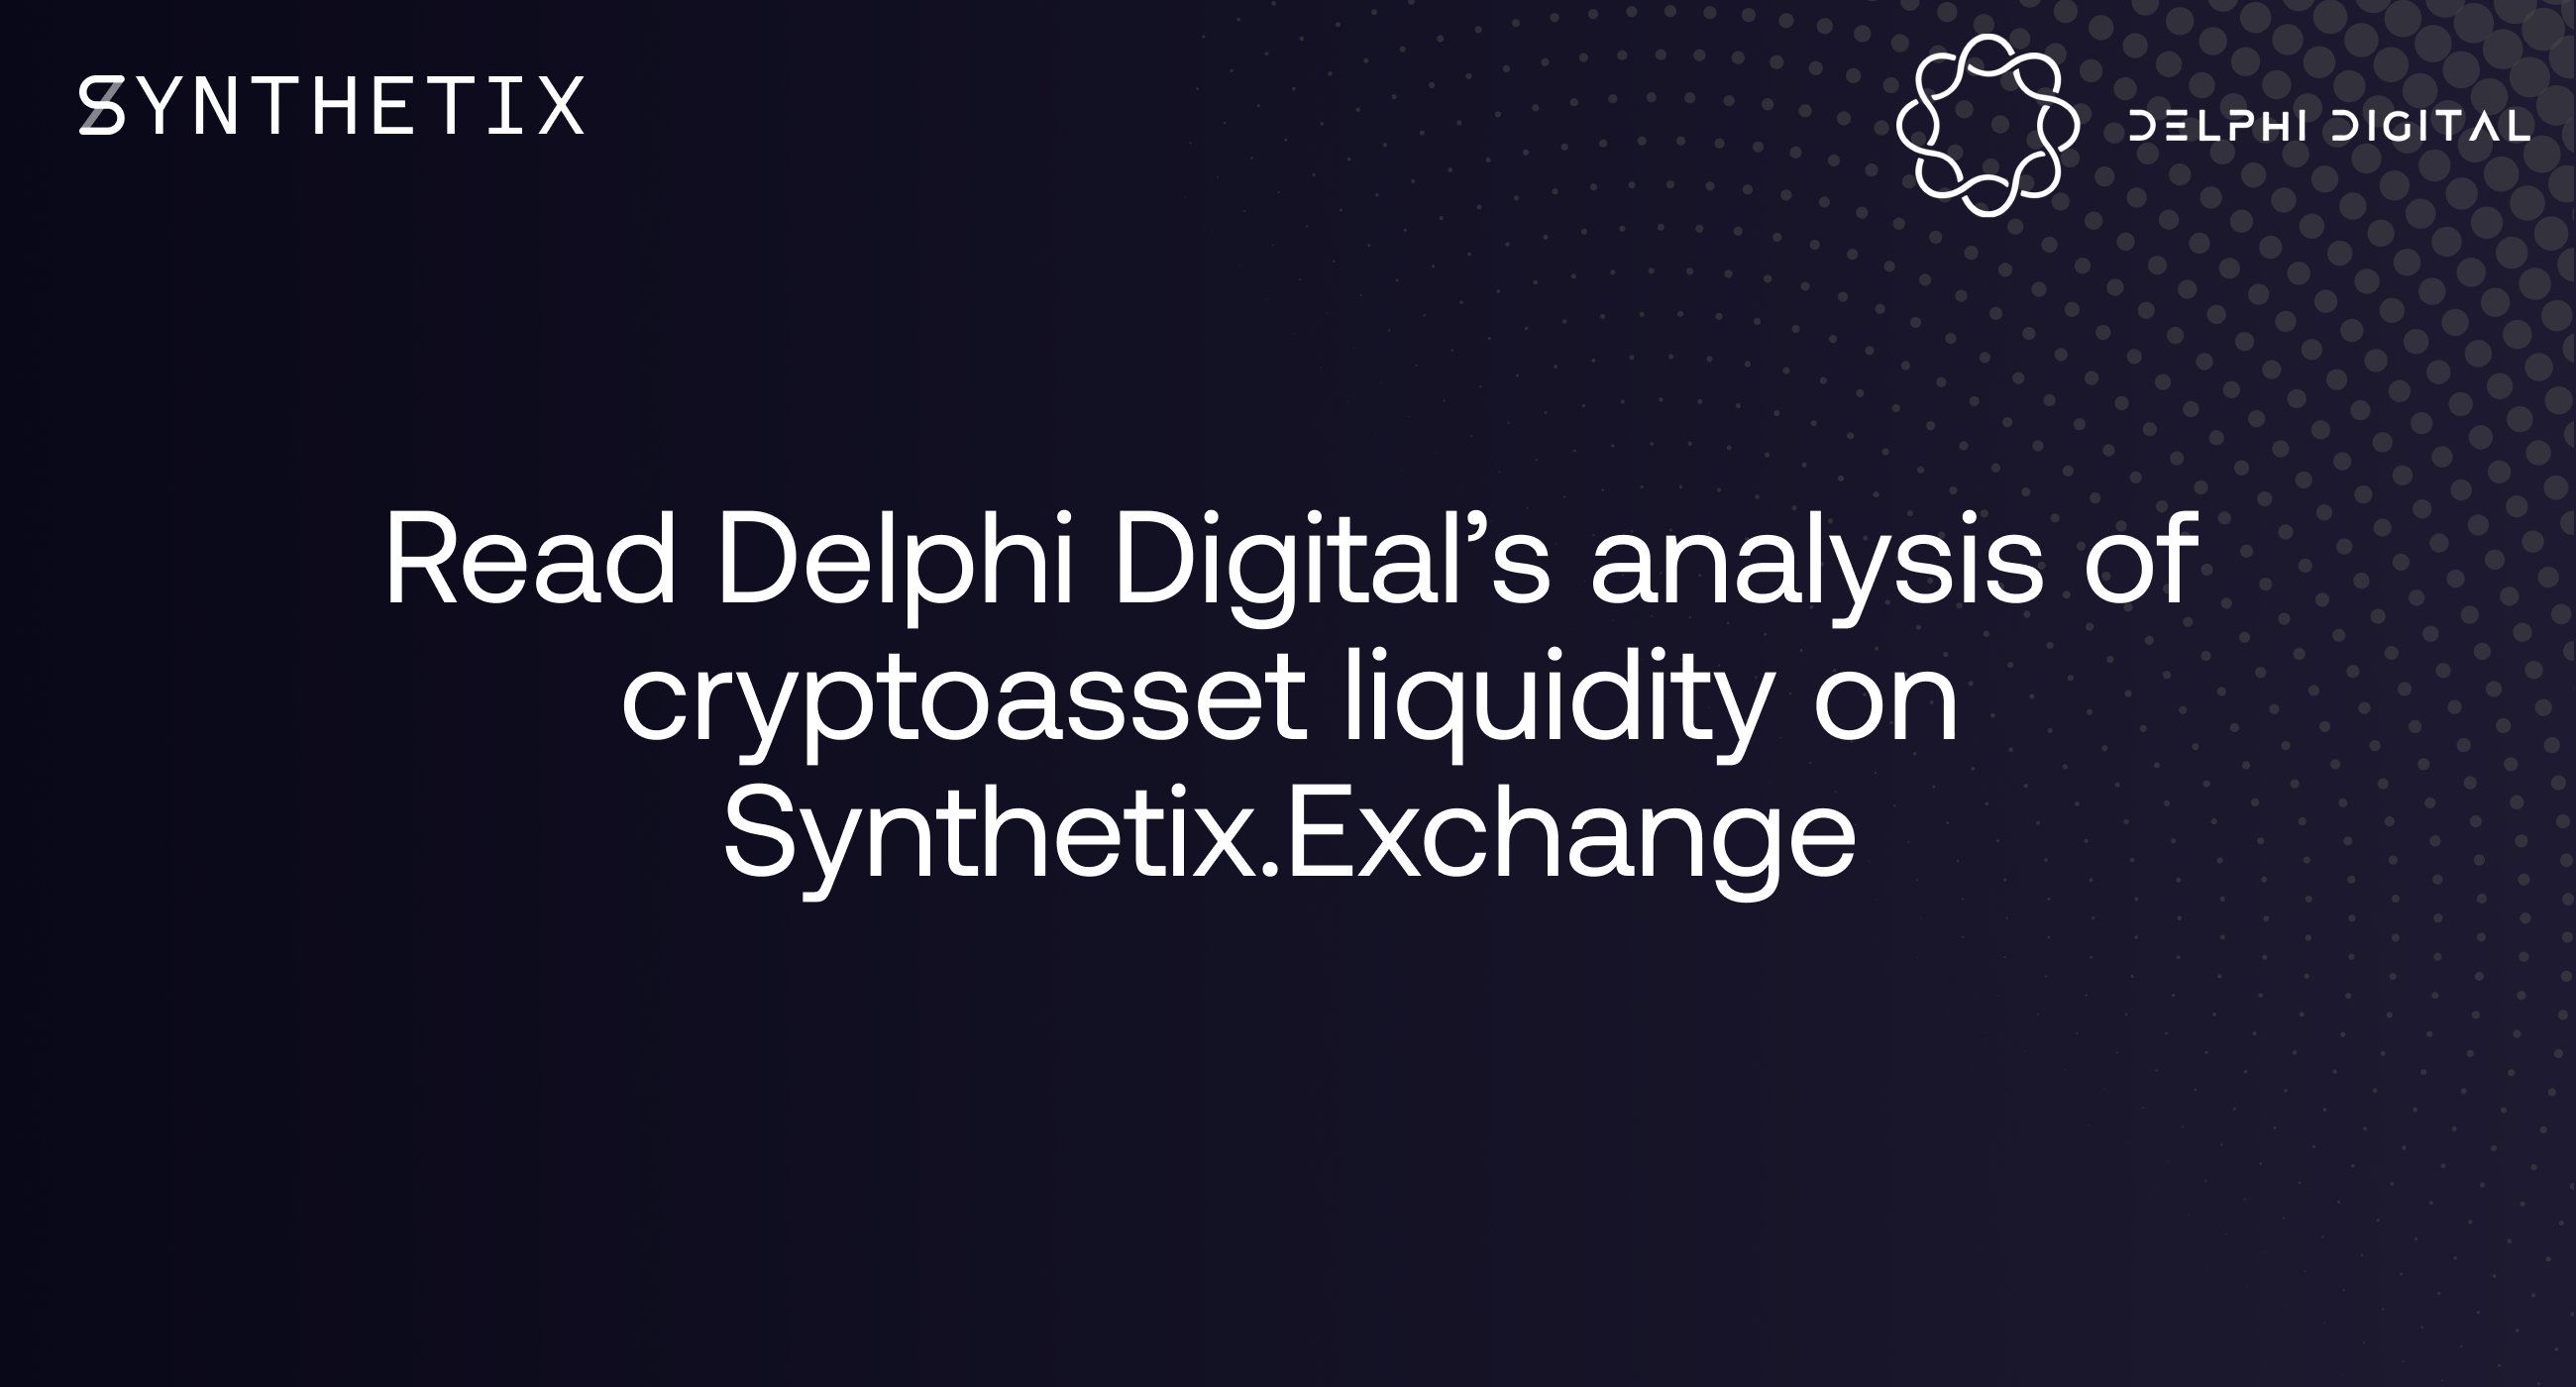 Read Delphi Digital's analysis of cryptoasset liquidity on sX